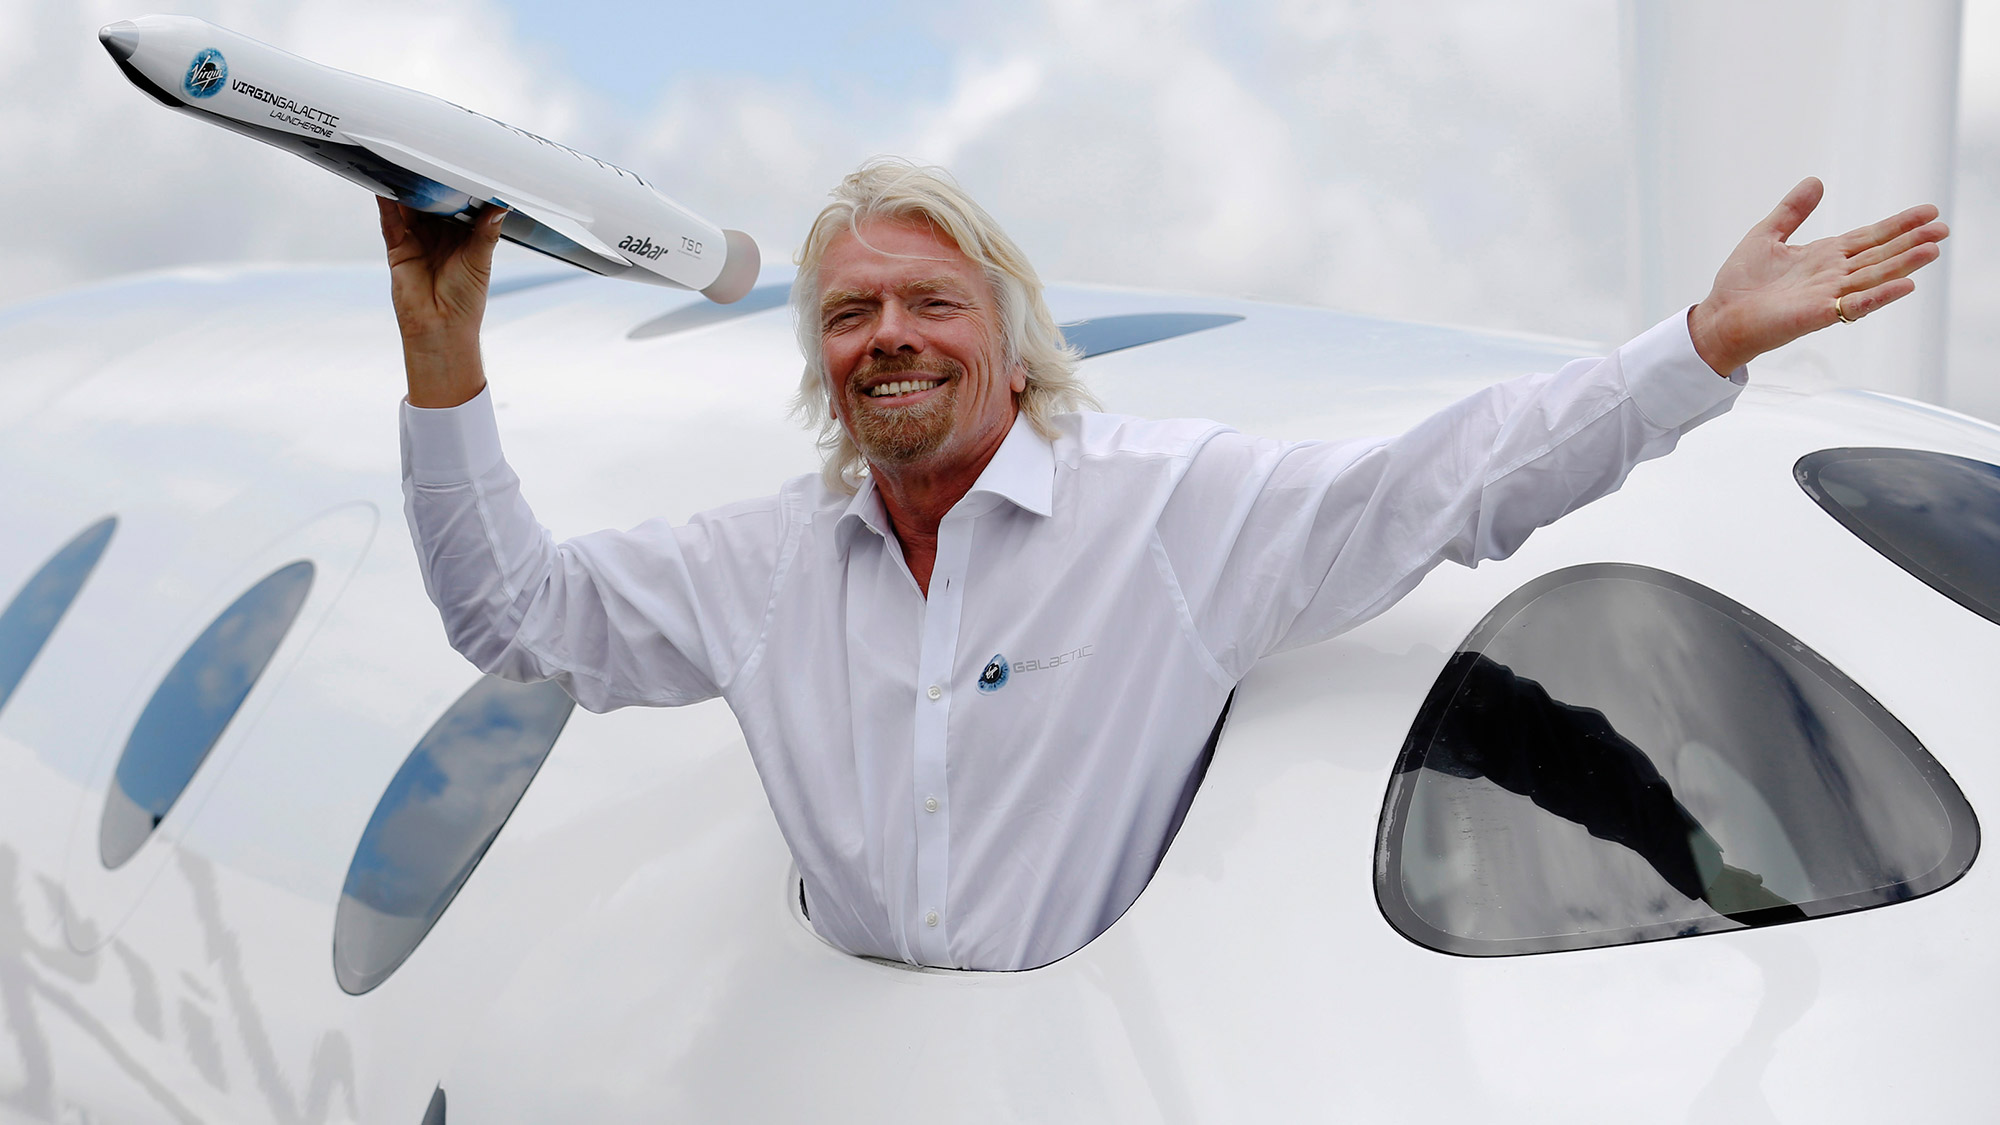 Richard Branson, seen here at an air show in 2012, is a self-made billionaire who has a large conglomerate of businesses under the Virgin brand.